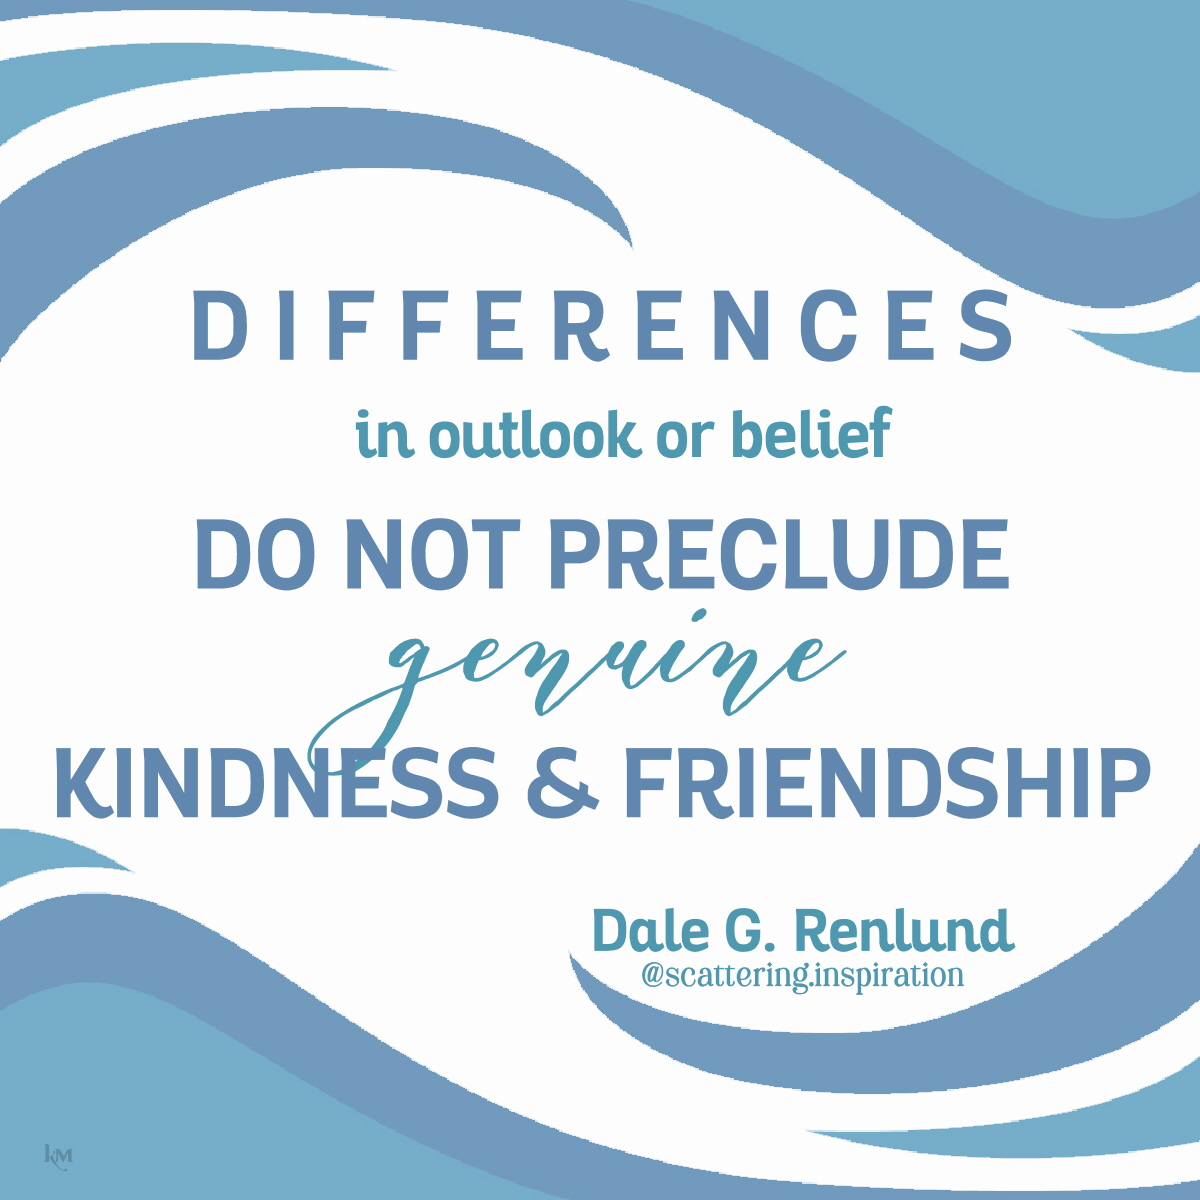 differences do not preclude